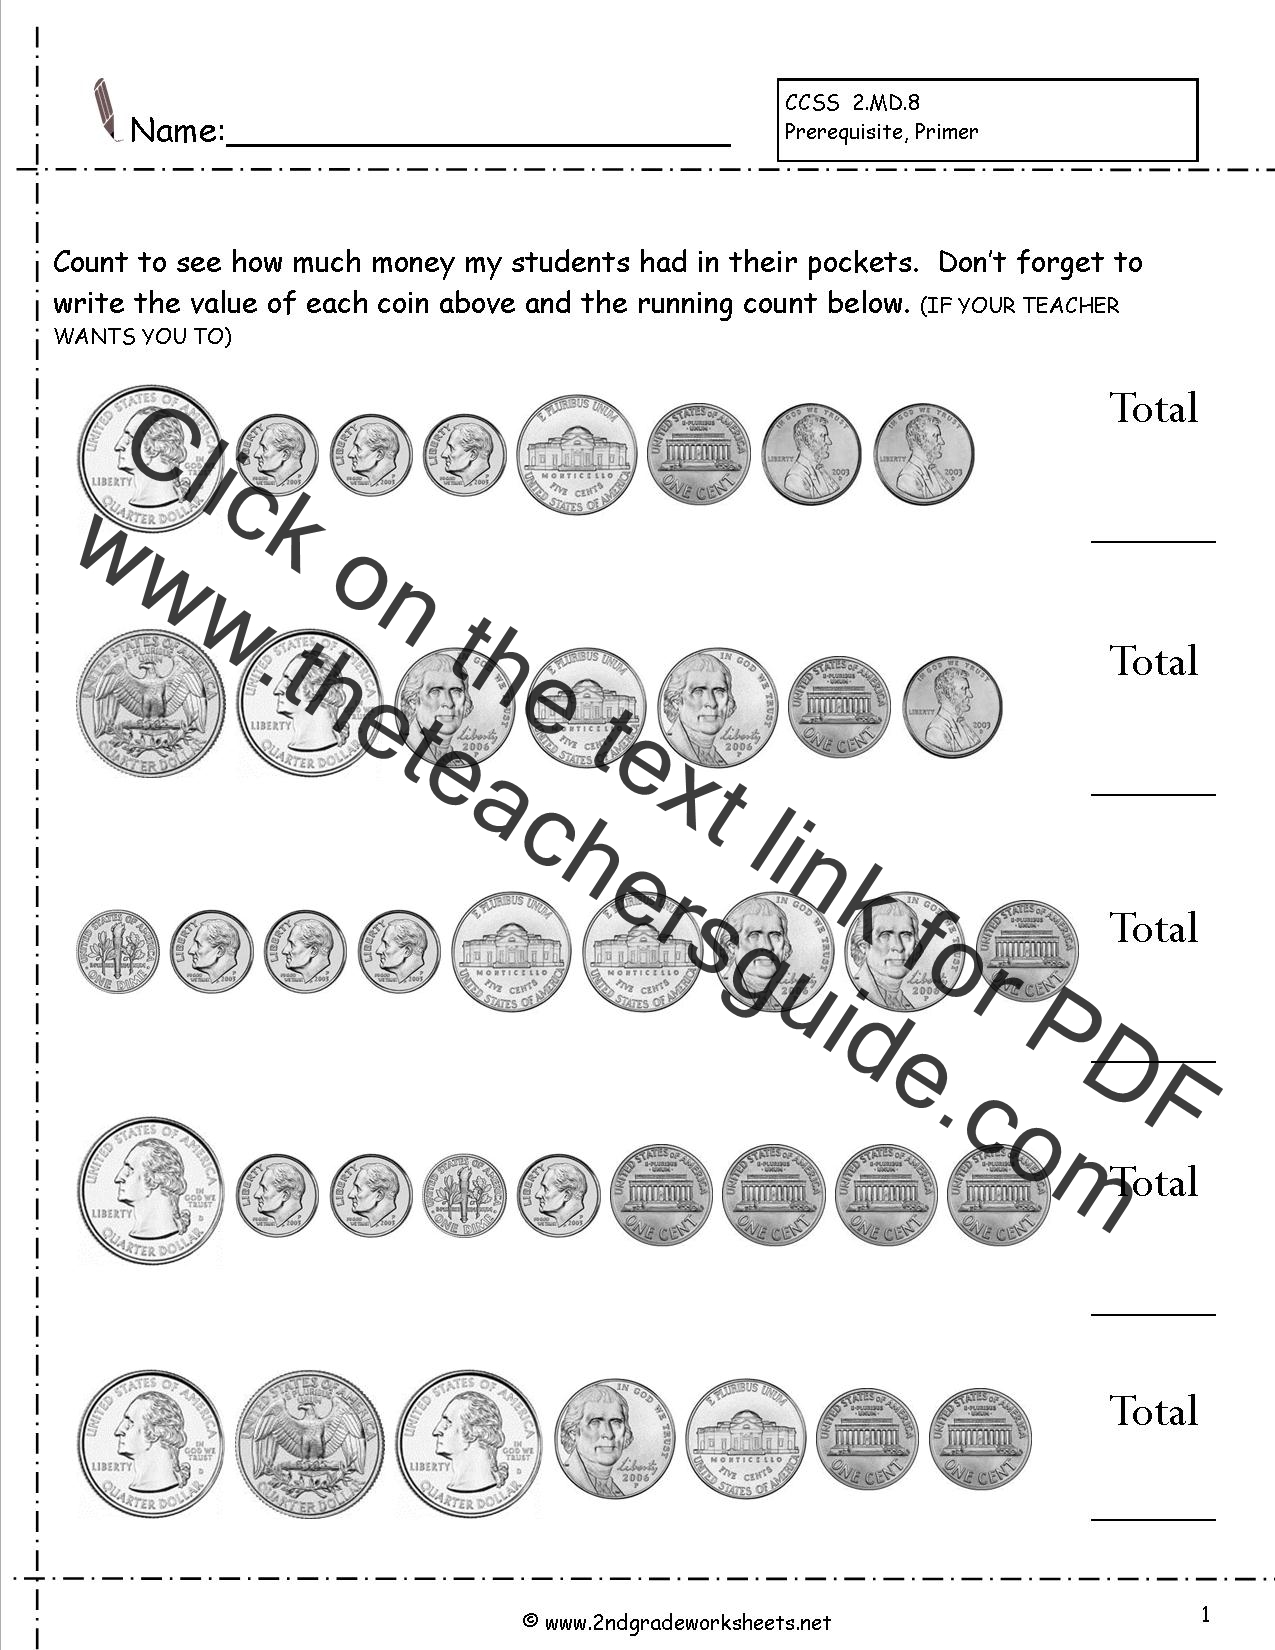 photograph relating to Free Printable Money Worksheets known as Counting Cash and Financial Worksheets and Printouts